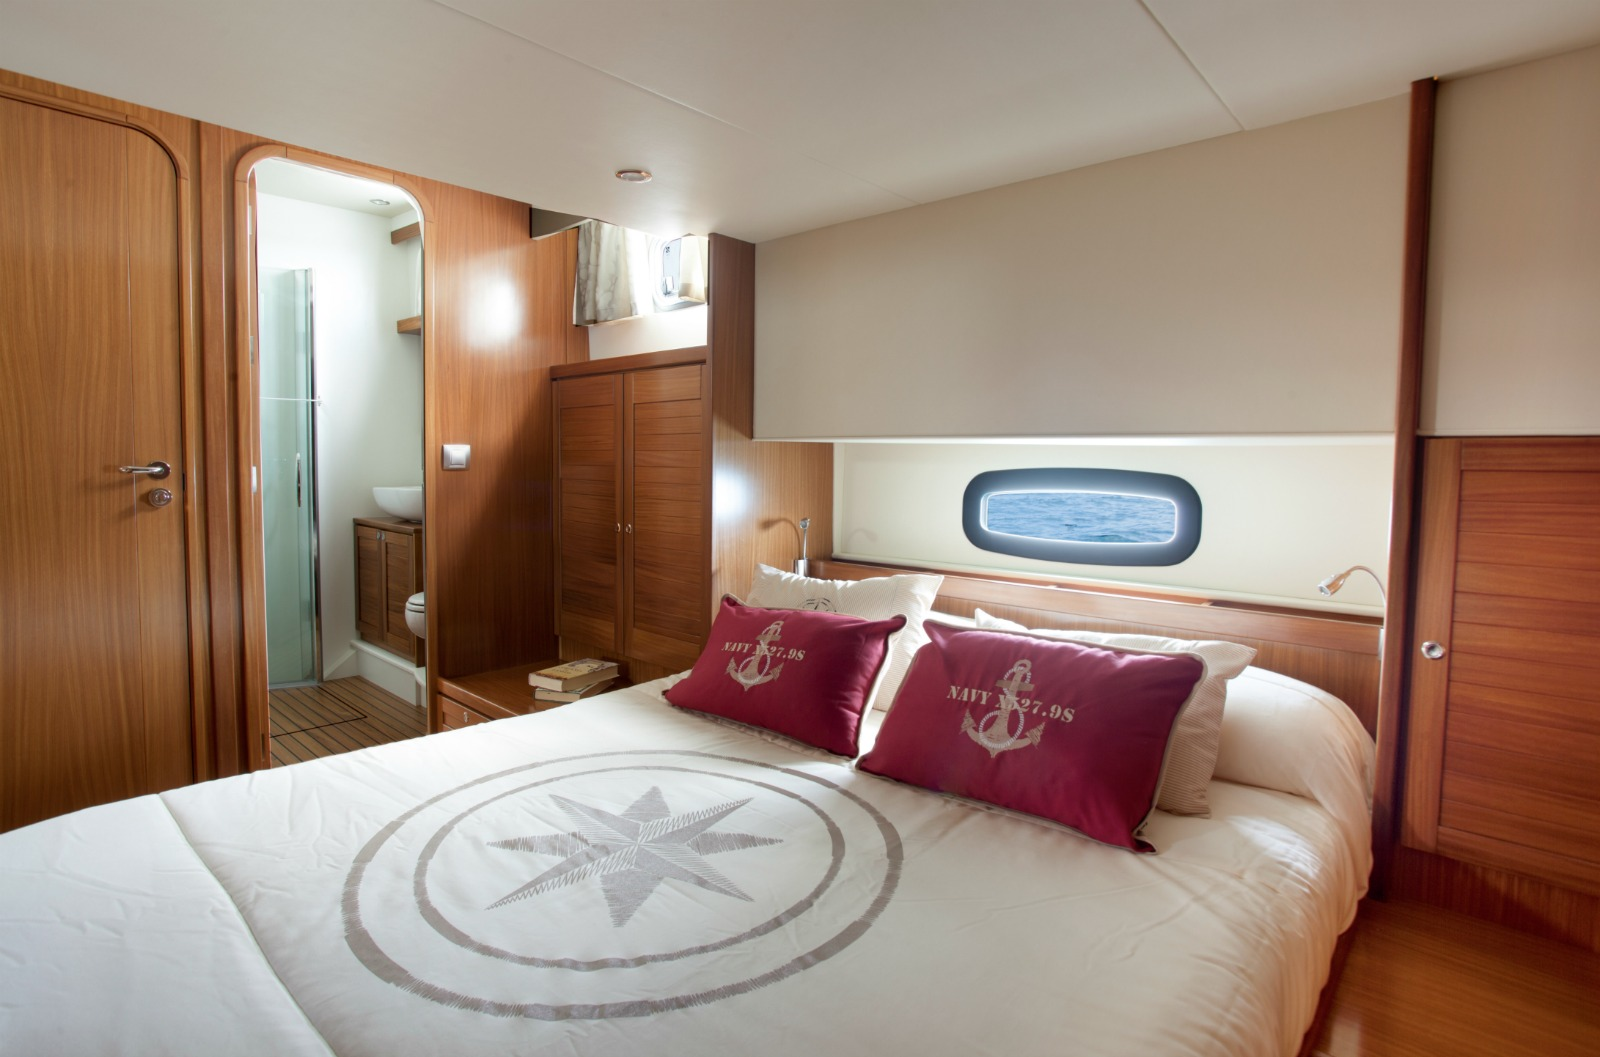 Minorca Islander 54 yacht for sale - Master Stateroom